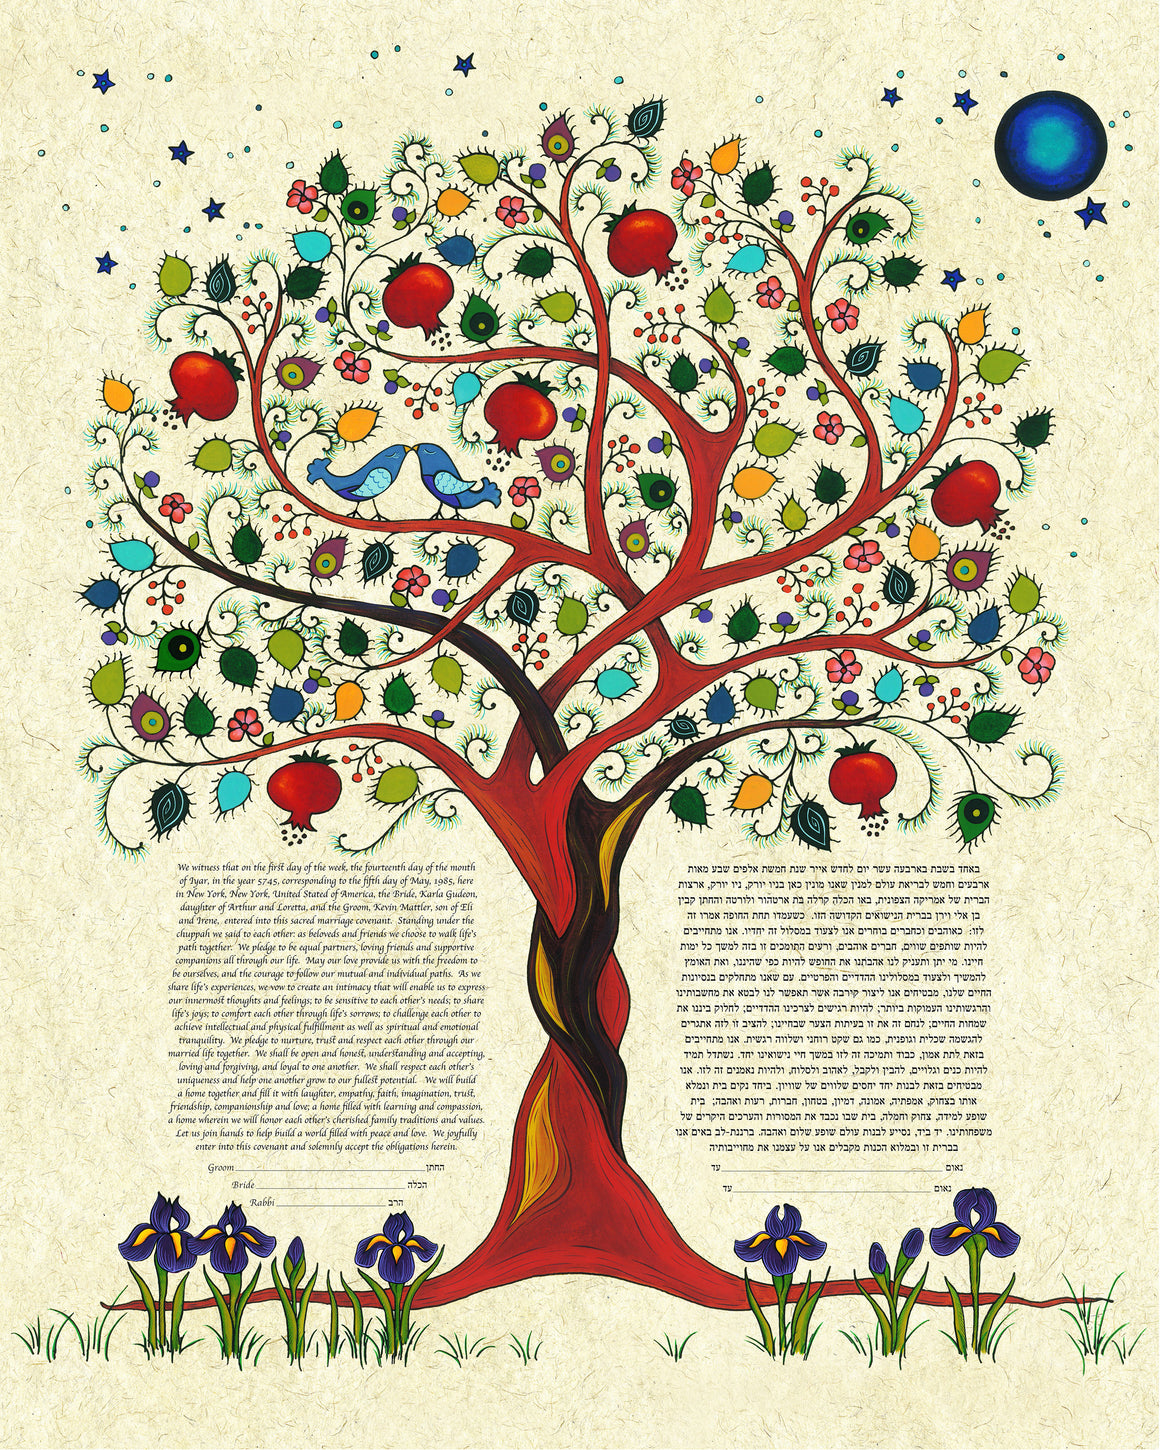 Tree of Life Version II